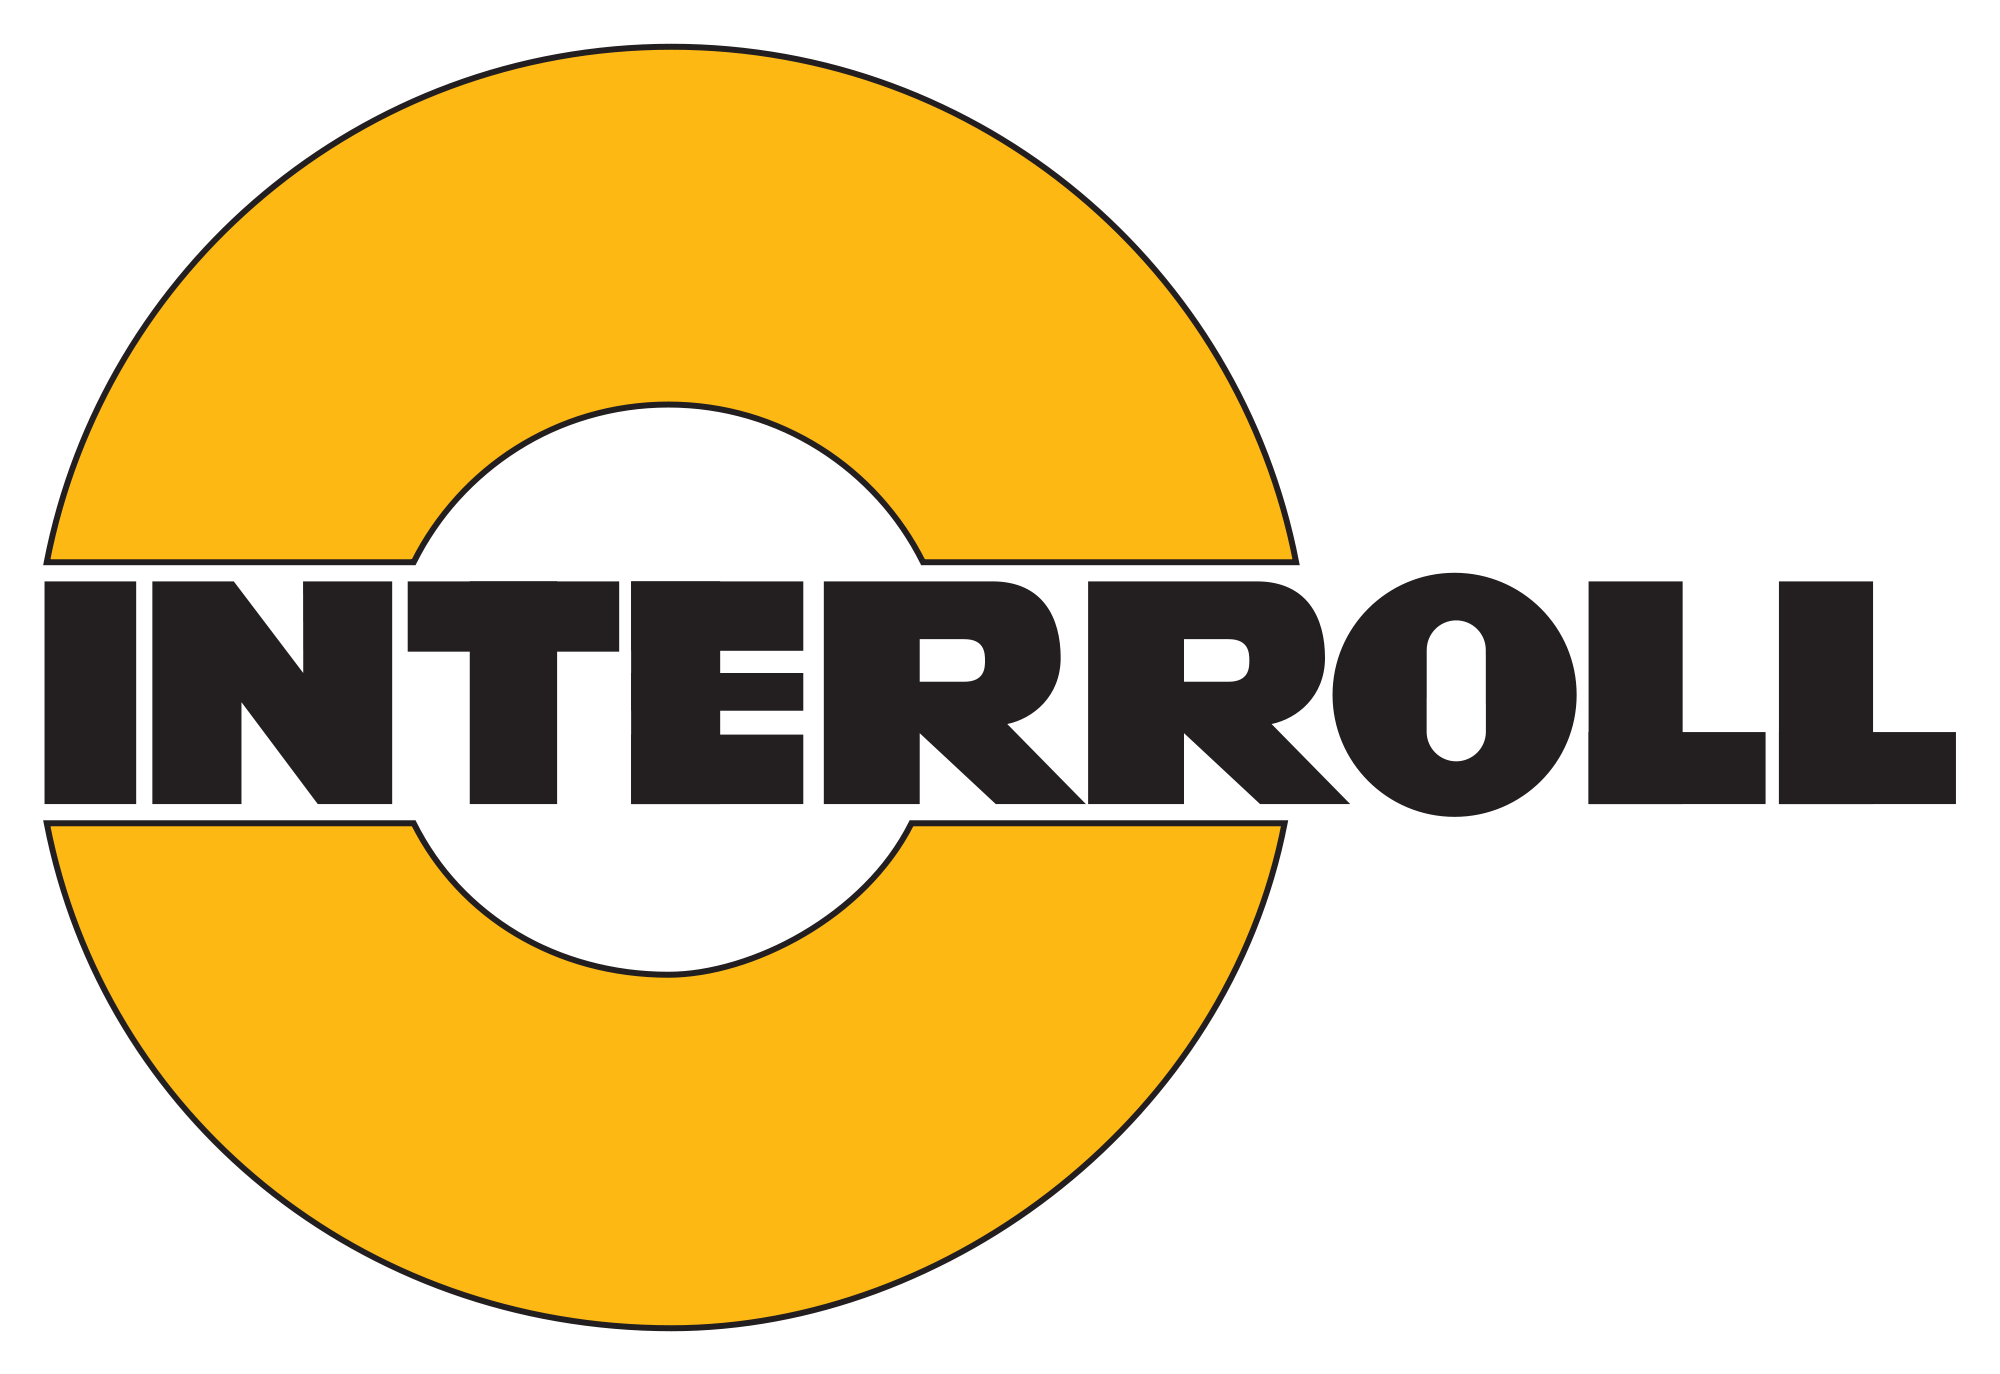 Interroll Automation GmbH